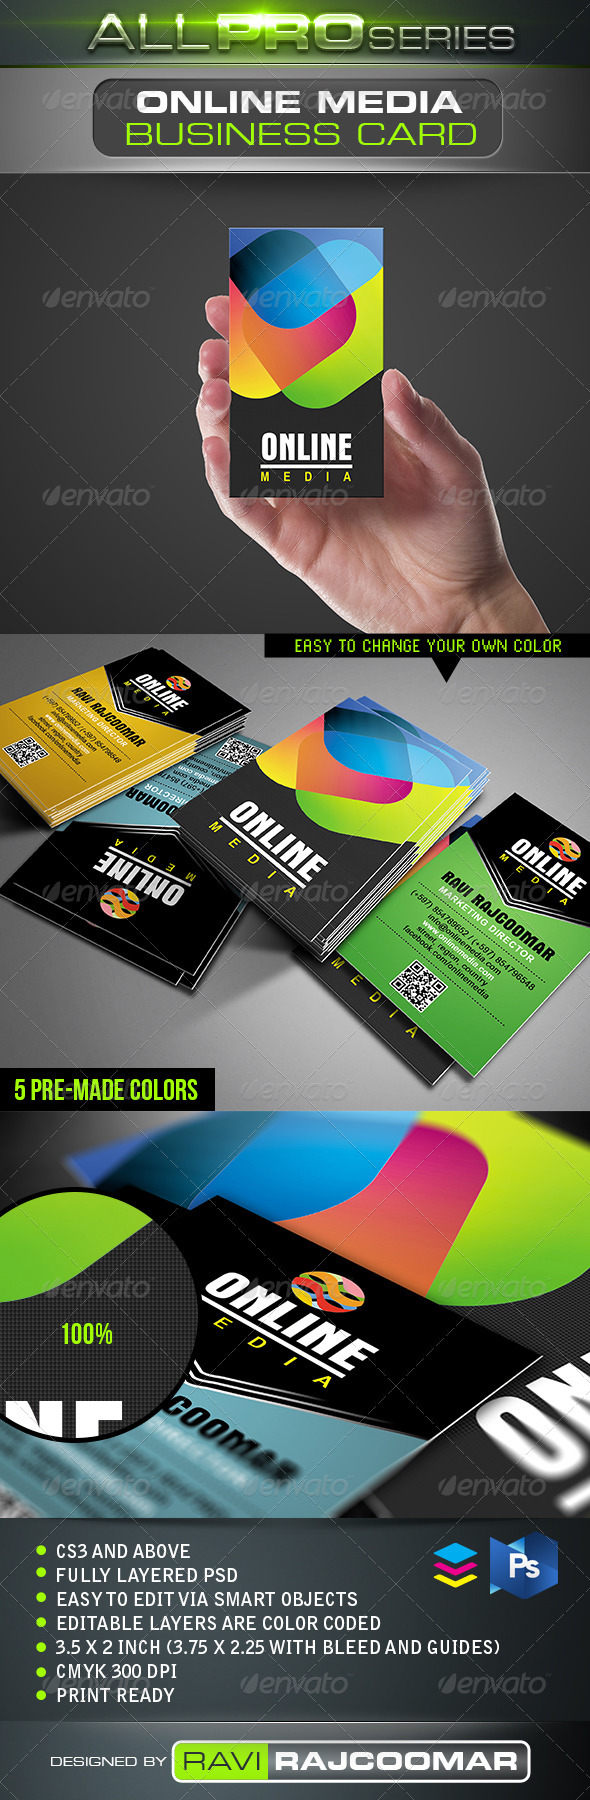 Online Media Business Card - Business Cards Print Templates